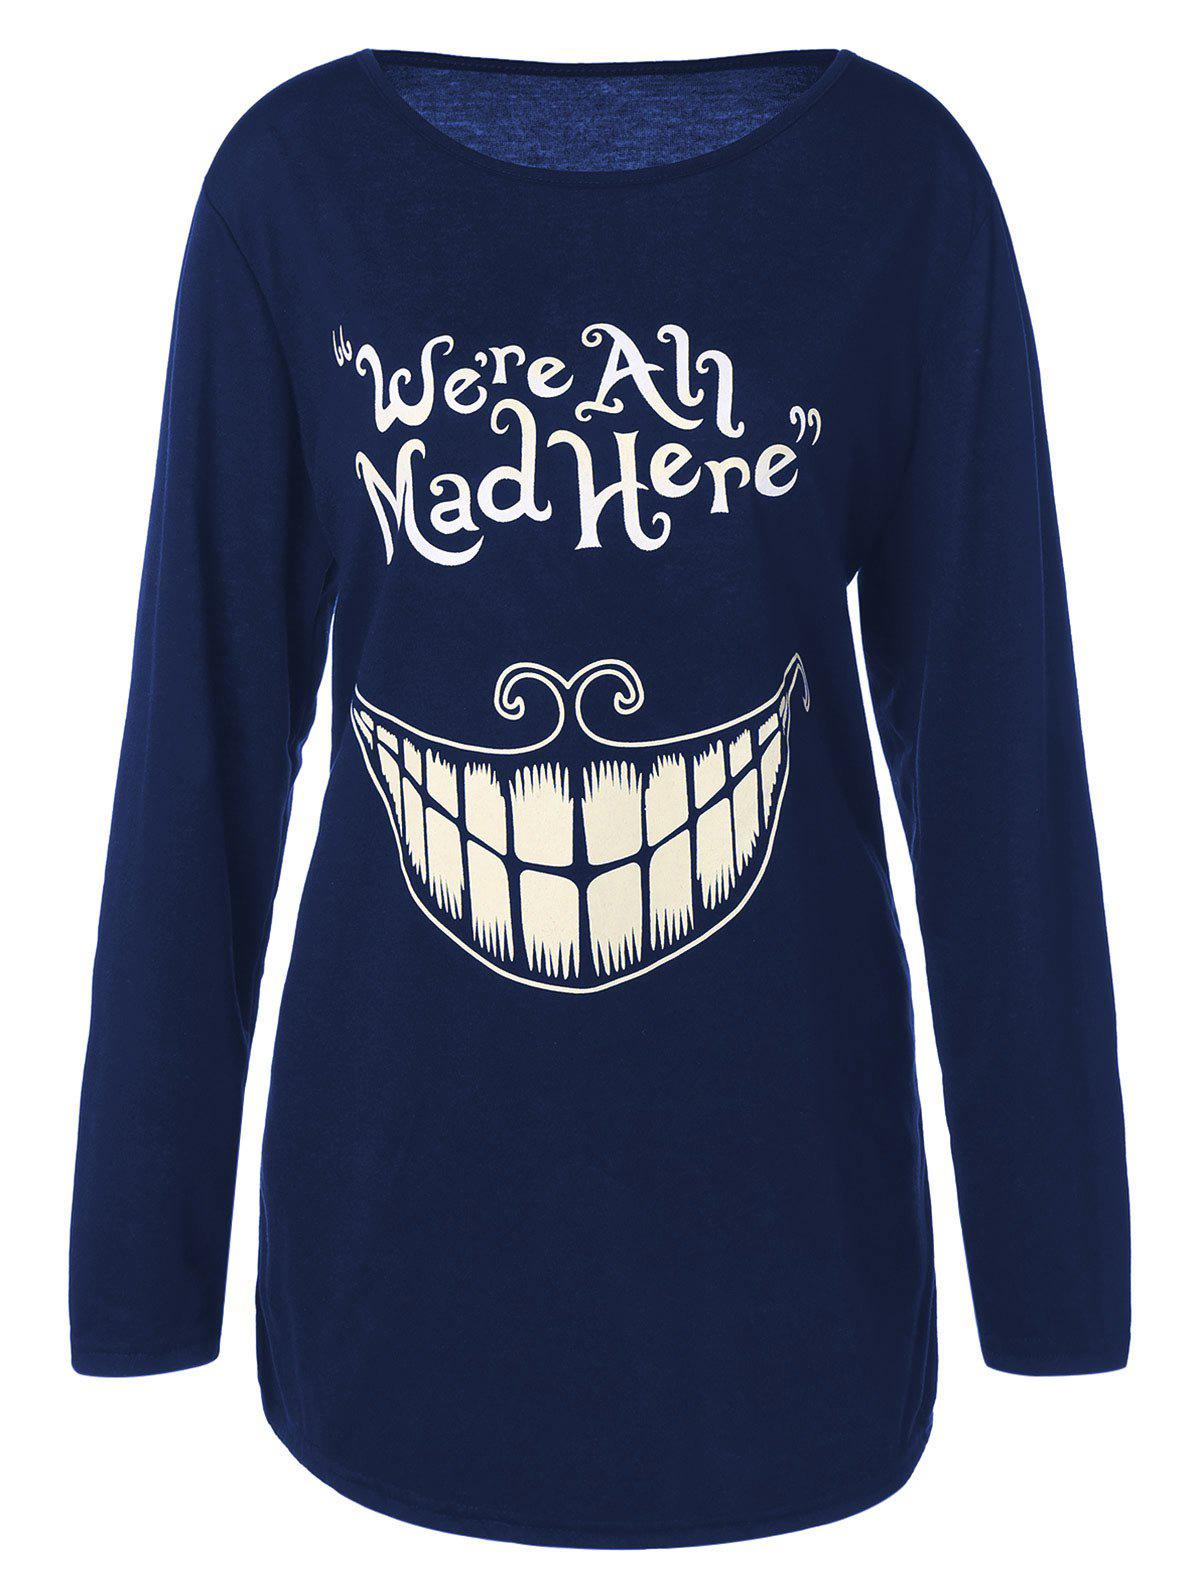 Plus Size Teeth and Letter Print T-shirtWOMEN<br><br>Size: 4XL; Color: DEEP BLUE; Material: Polyester,Spandex; Shirt Length: Long; Sleeve Length: Full; Collar: Jewel Neck; Style: Casual; Season: Fall,Spring; Pattern Type: Letter; Weight: 0.2510kg; Package Contents: 1 x T-Shirt;